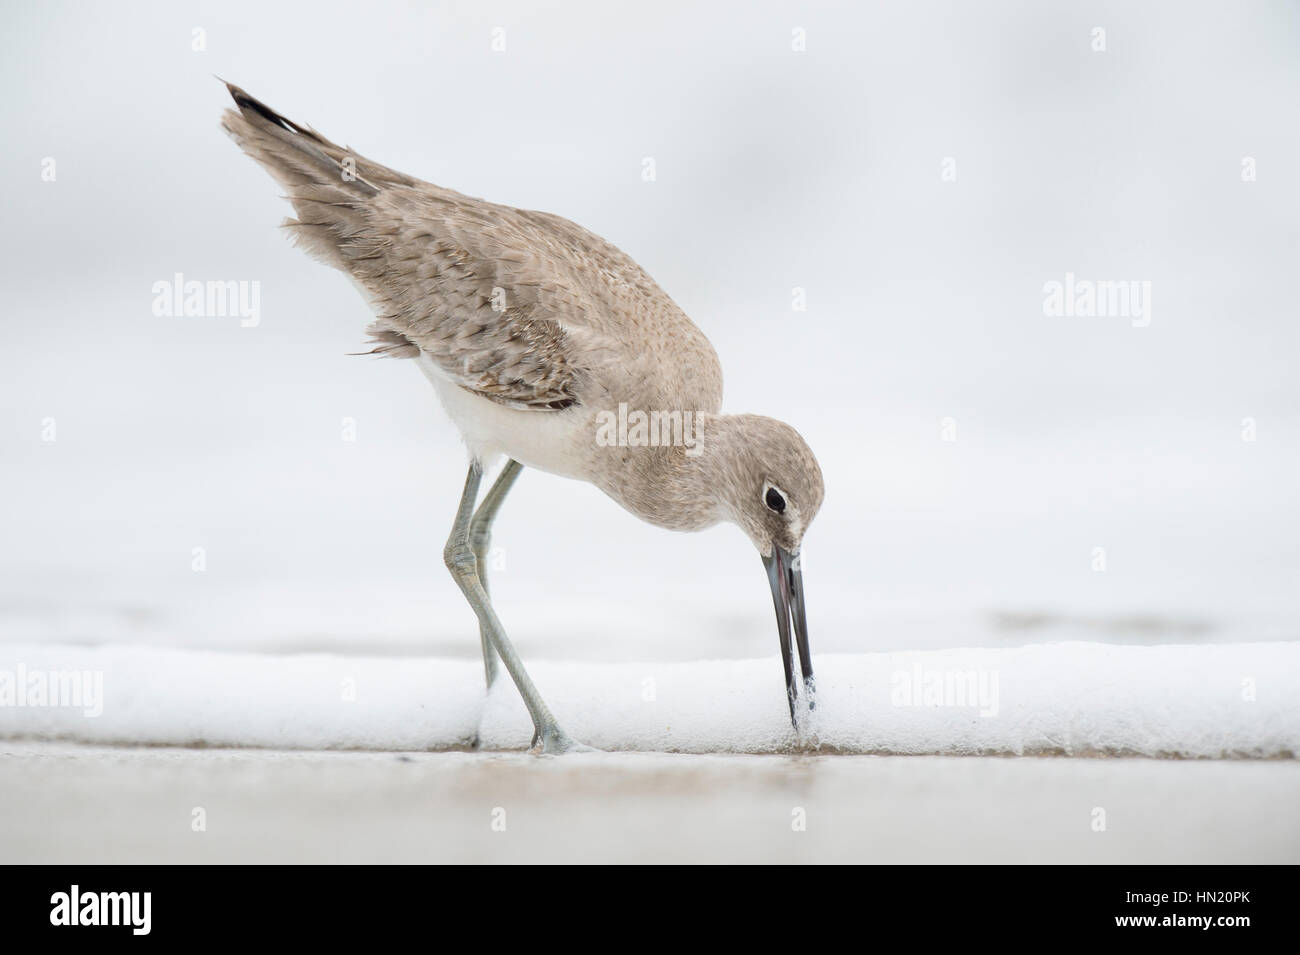 A Willet pushes its long bill into the wet sand on a beach in soft overcast light with a solid white background. Stock Photo